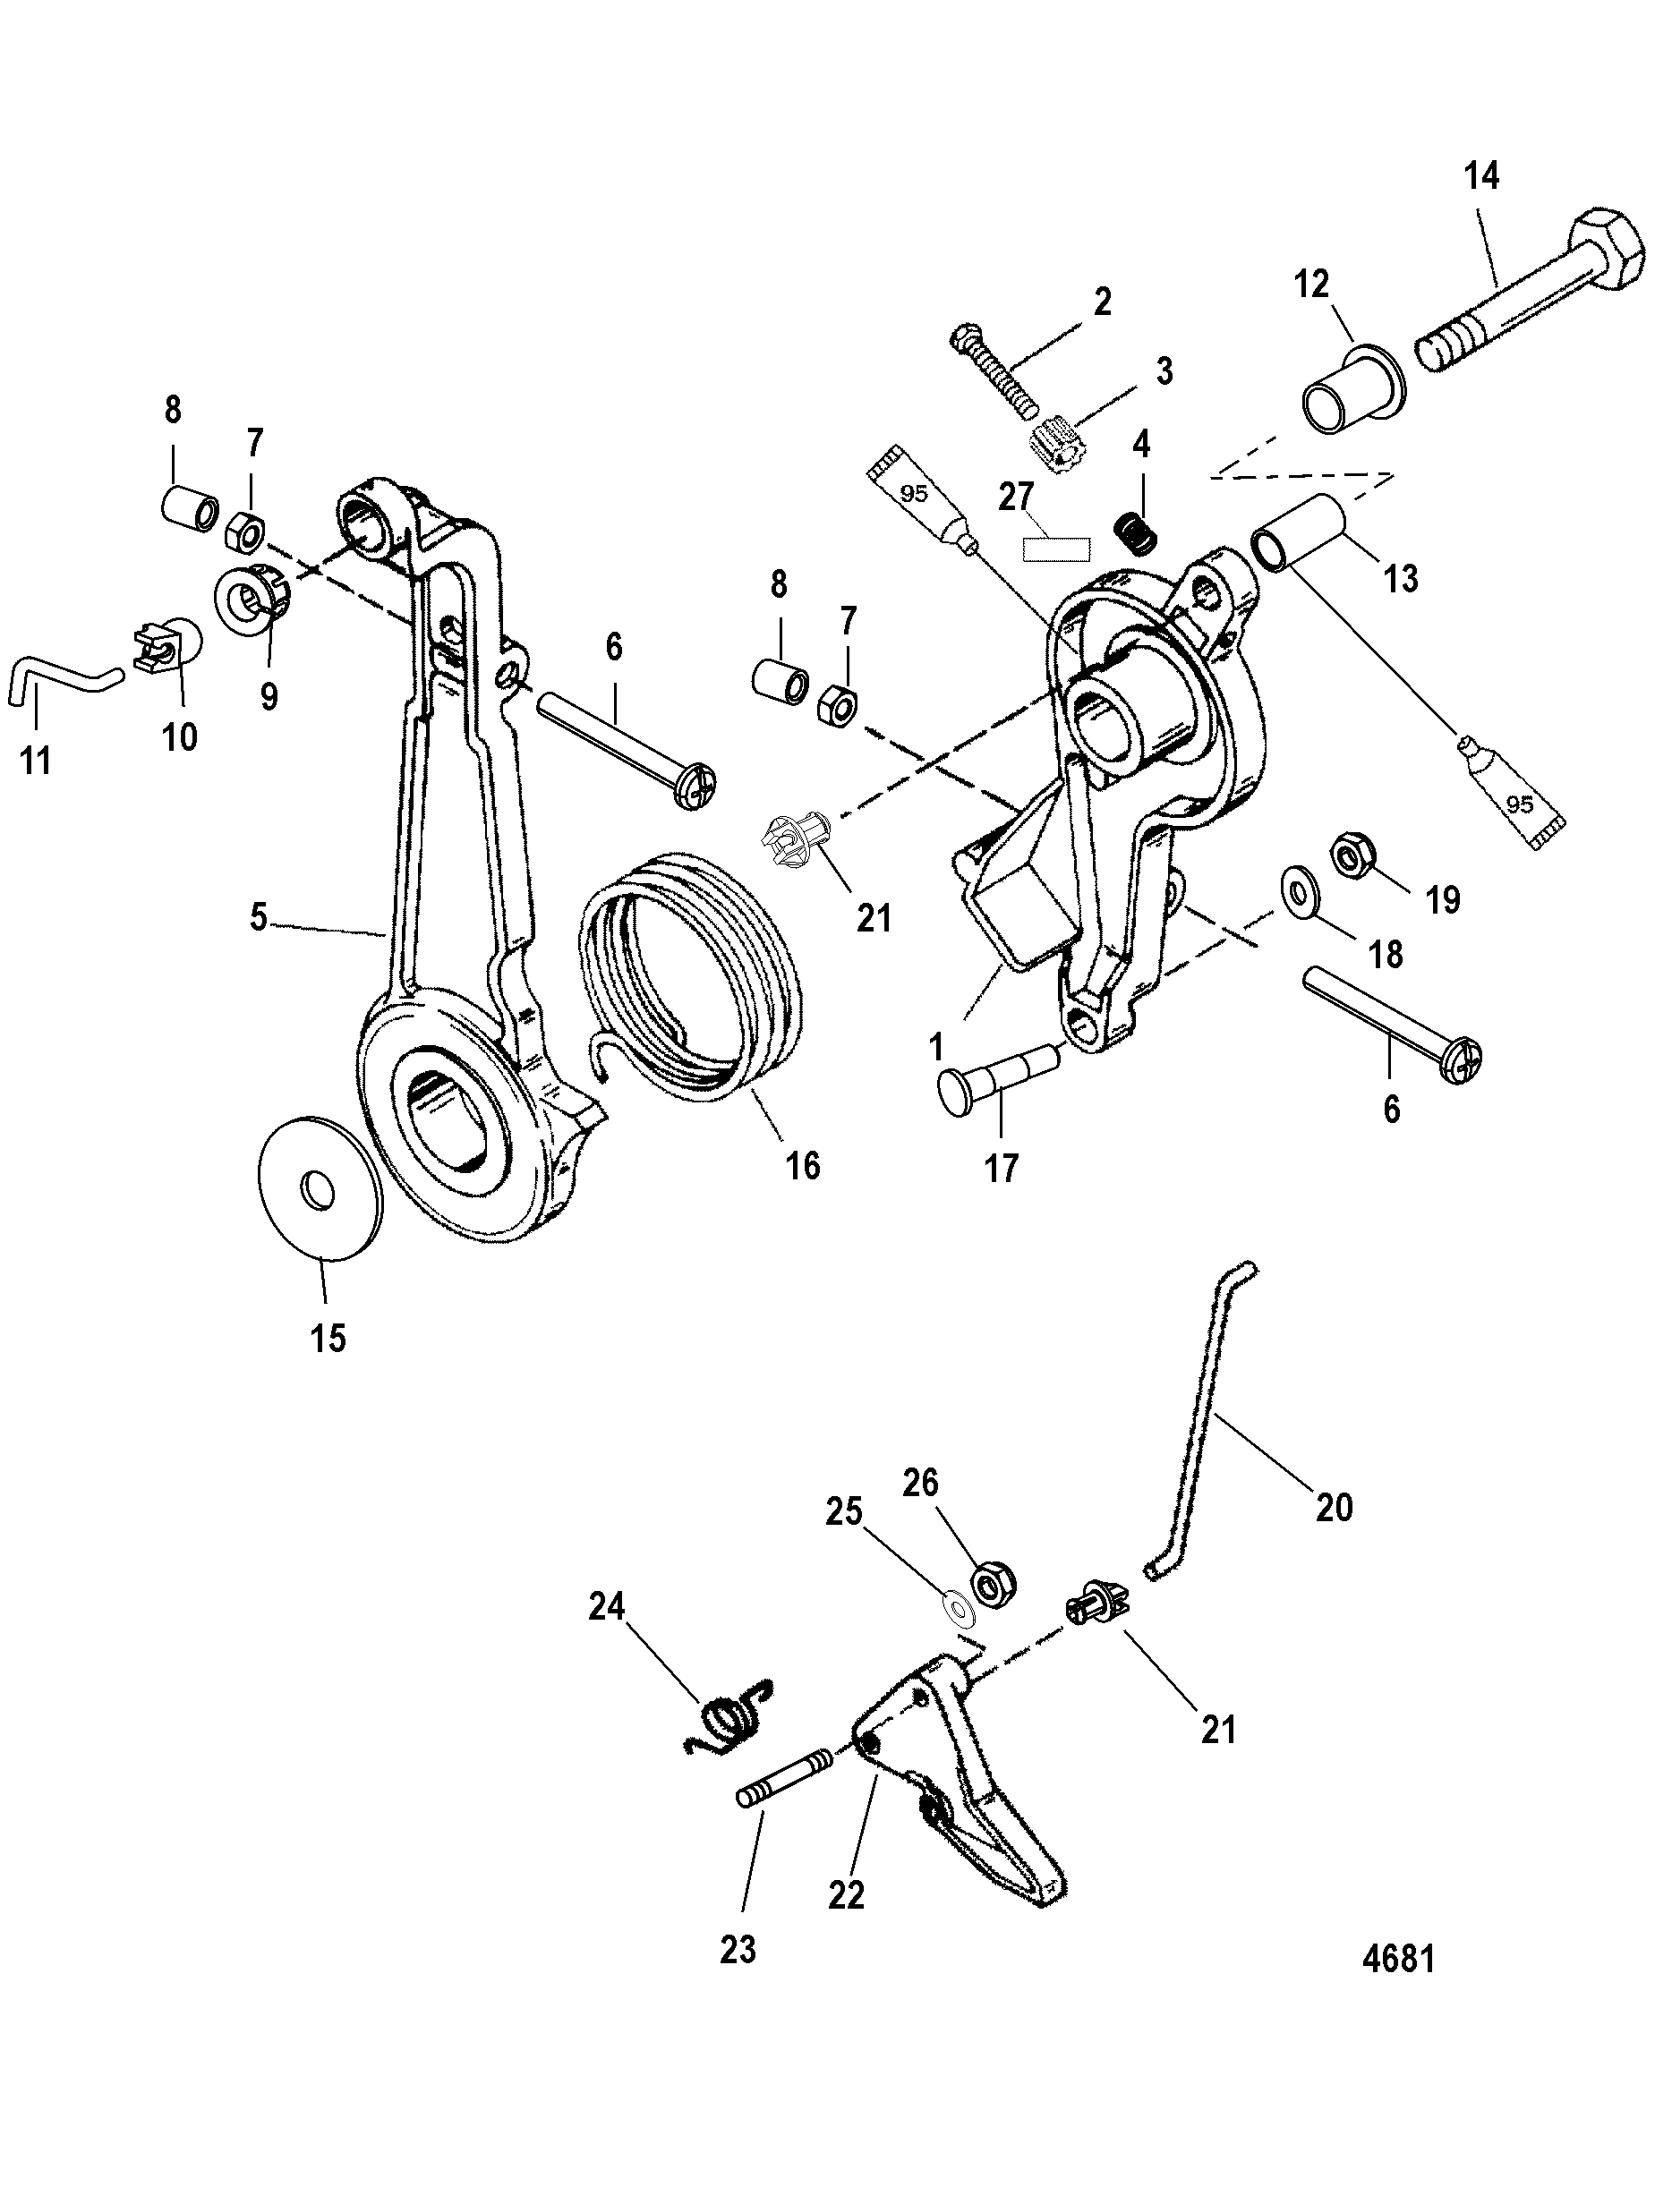 Throttle Lever And Linkage For Mariner Mercury 75 90 H P